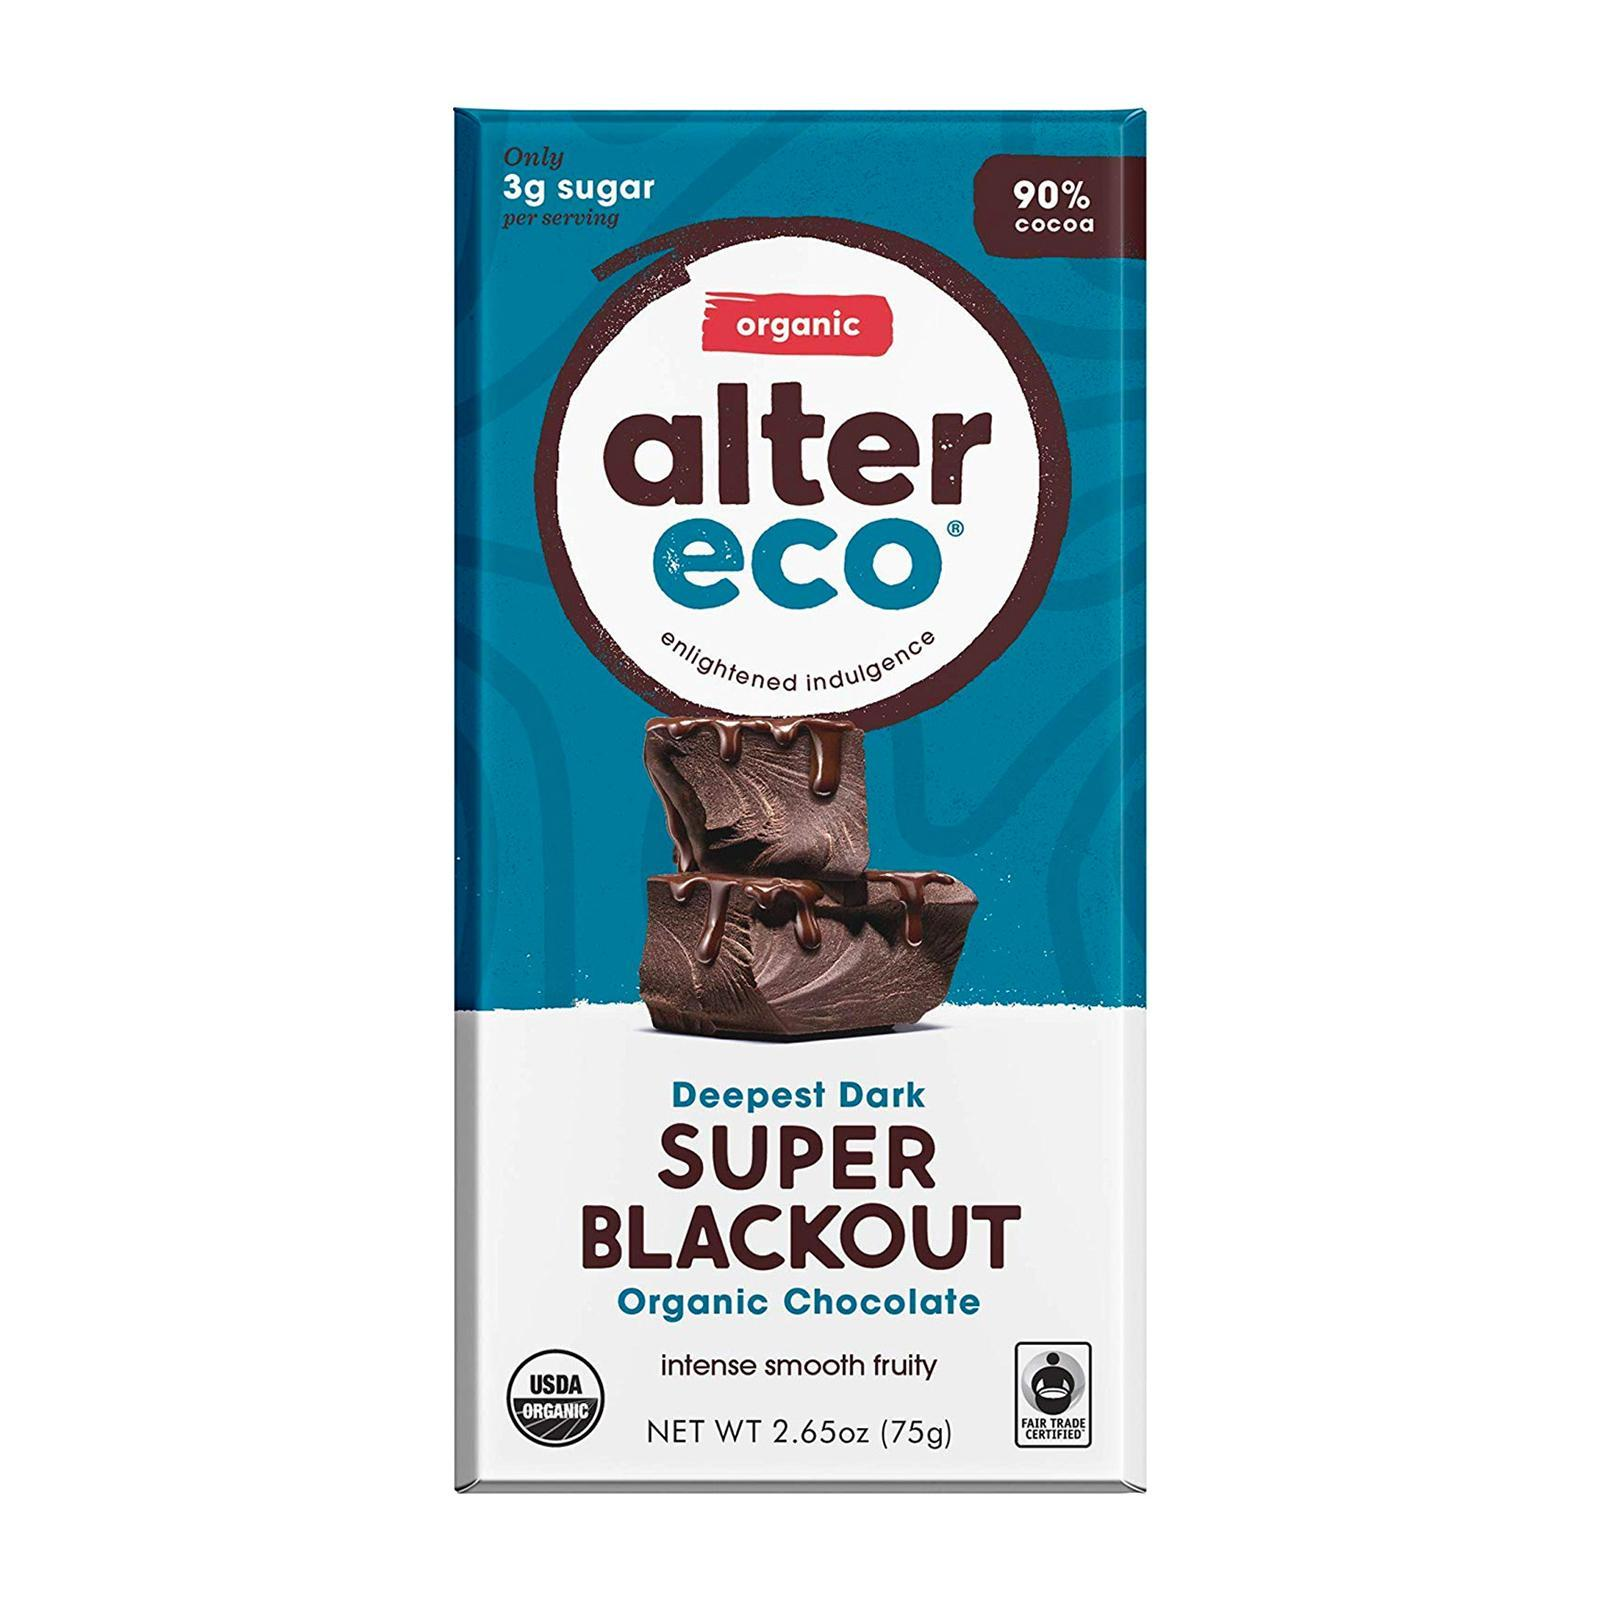 Alter Eco Organic Deep Dark Super Blackout Chocolate - By Wholesome Harvest